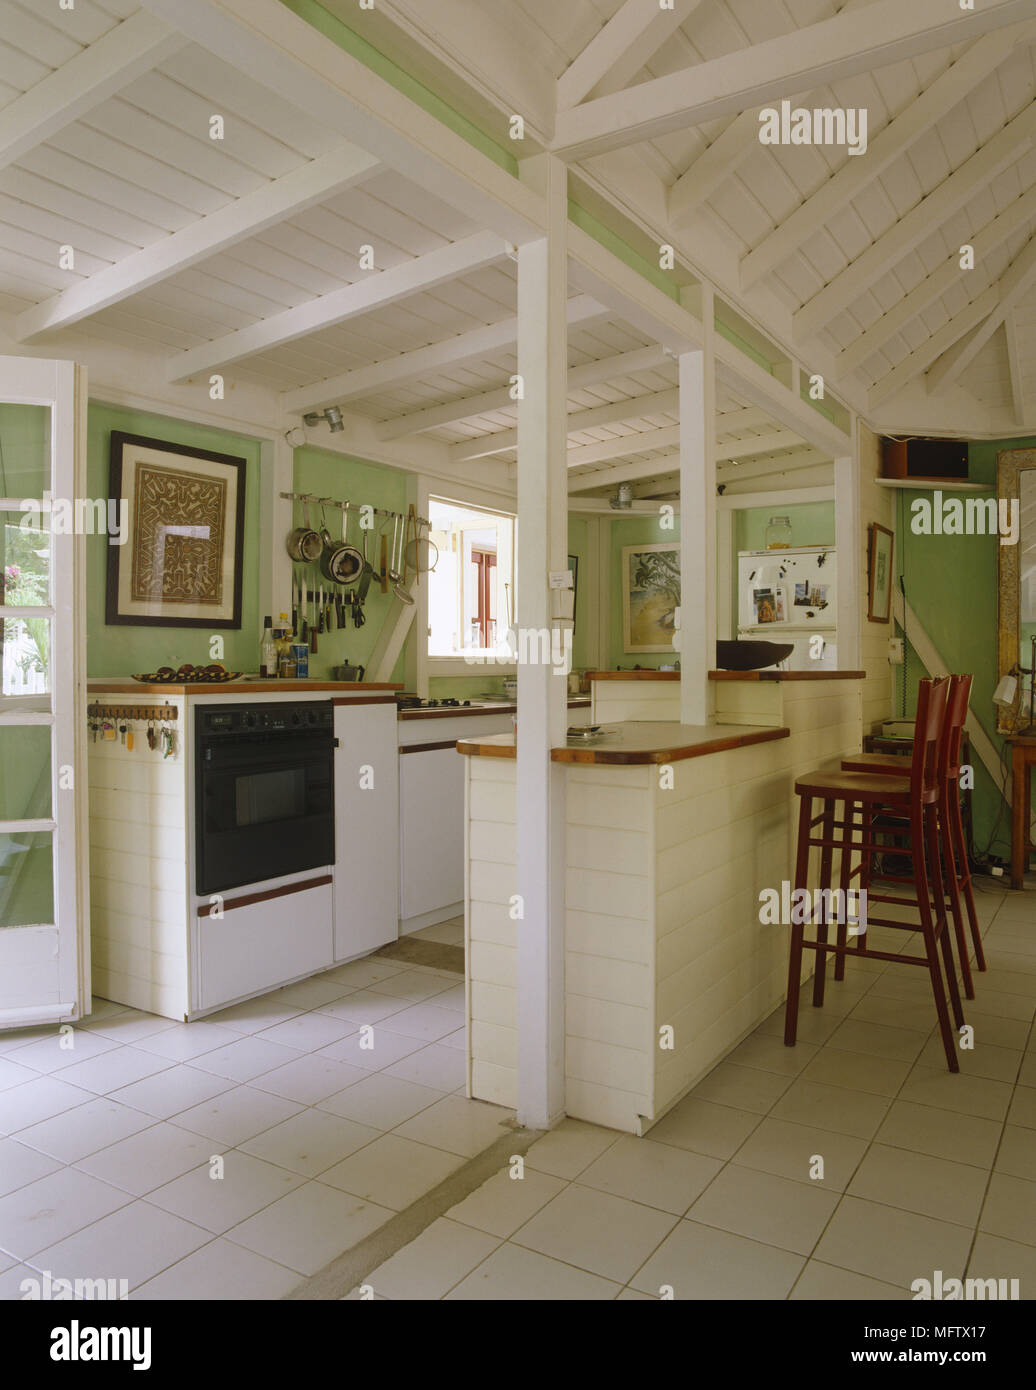 Kitchen With Tiled Floor And Wooden Ceiling Breakfast Bar High Chairs And  Green Walls